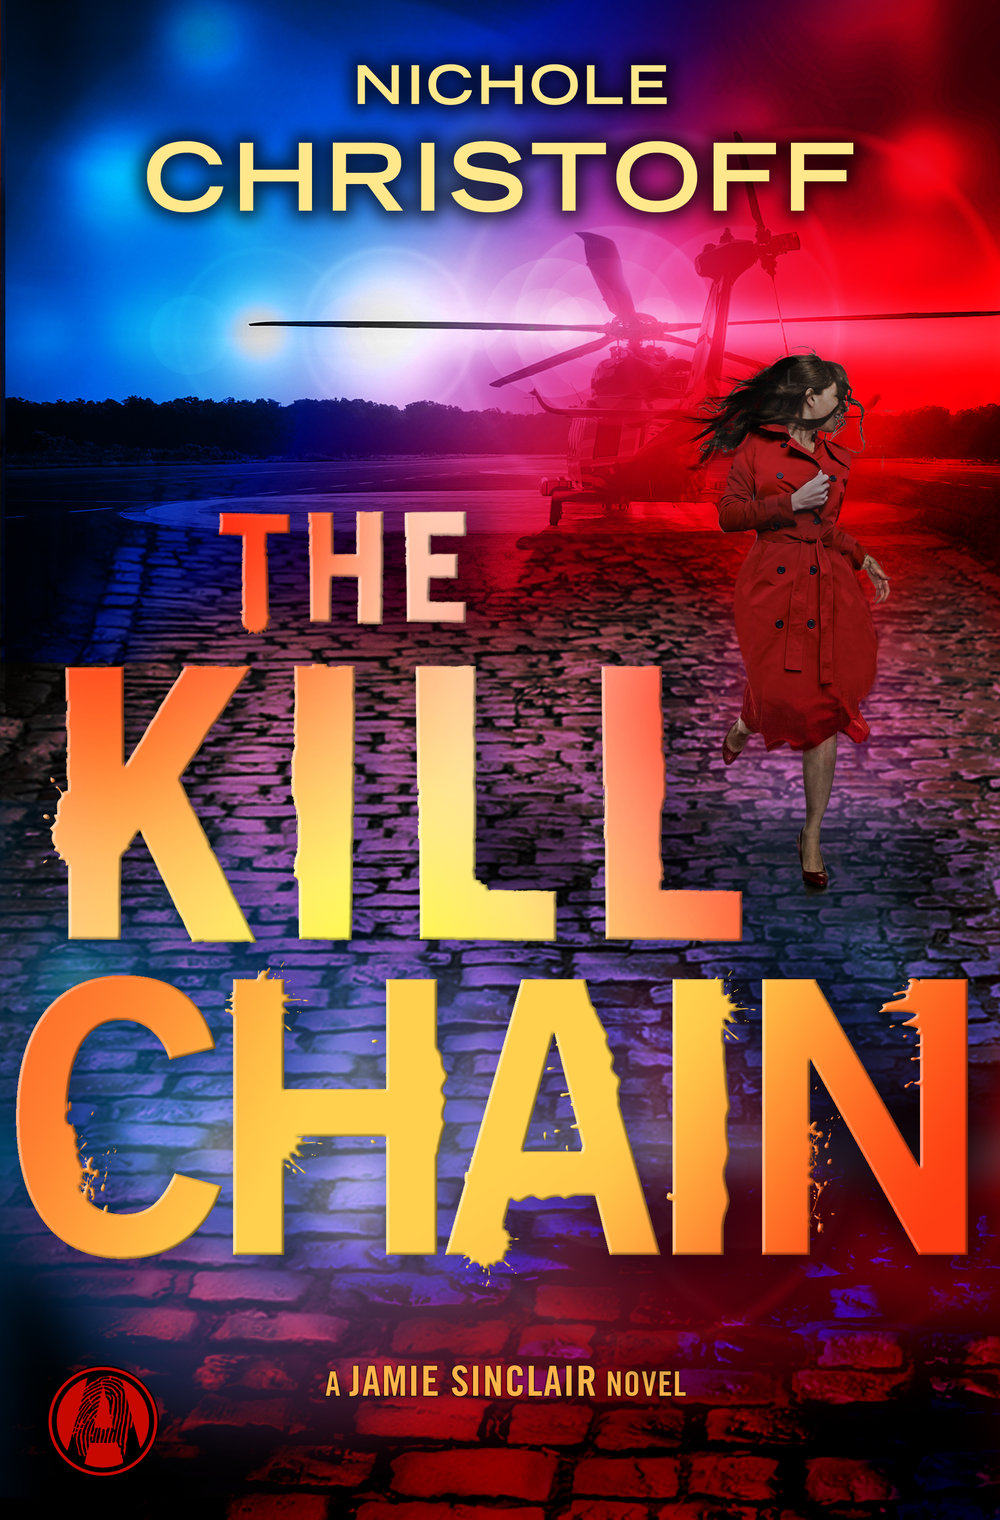 The Kill Chain - Security specialist and PI Jamie Sinclair shoots for the stars. Her enemies shoot to kill. Now, Jamie is on the run, framed for a murder she didn't commit. But the word quit isn't in Jamie's vocabulary.Catch up with Jamie in her 6th breakneck thriller, available now from Nichole Christoff and Random House Alibi.